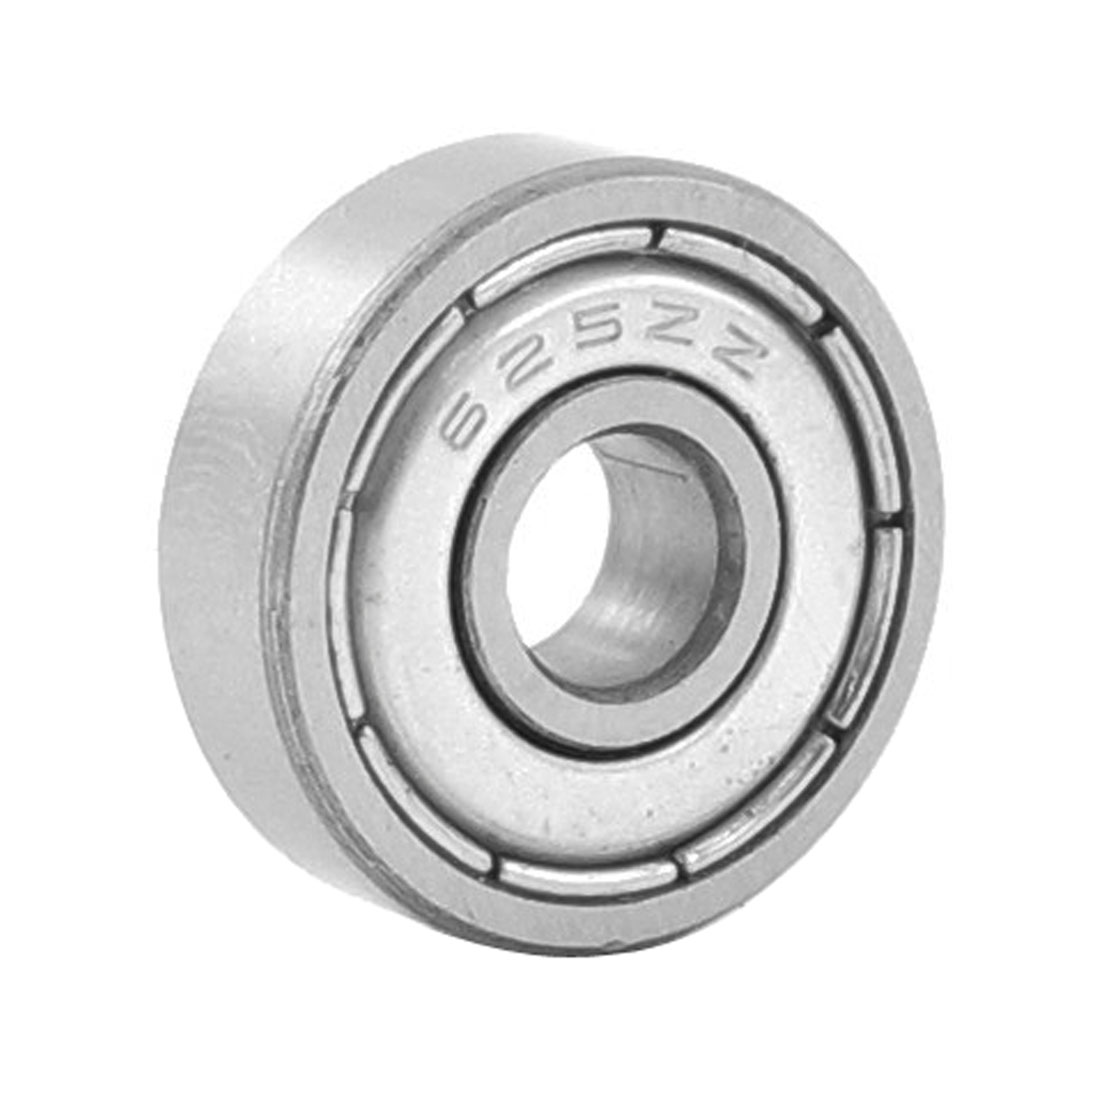 16mm x 5mm x 5mm Metal Sealed Single Row Deep Groove Ball Bearing 625ZZ